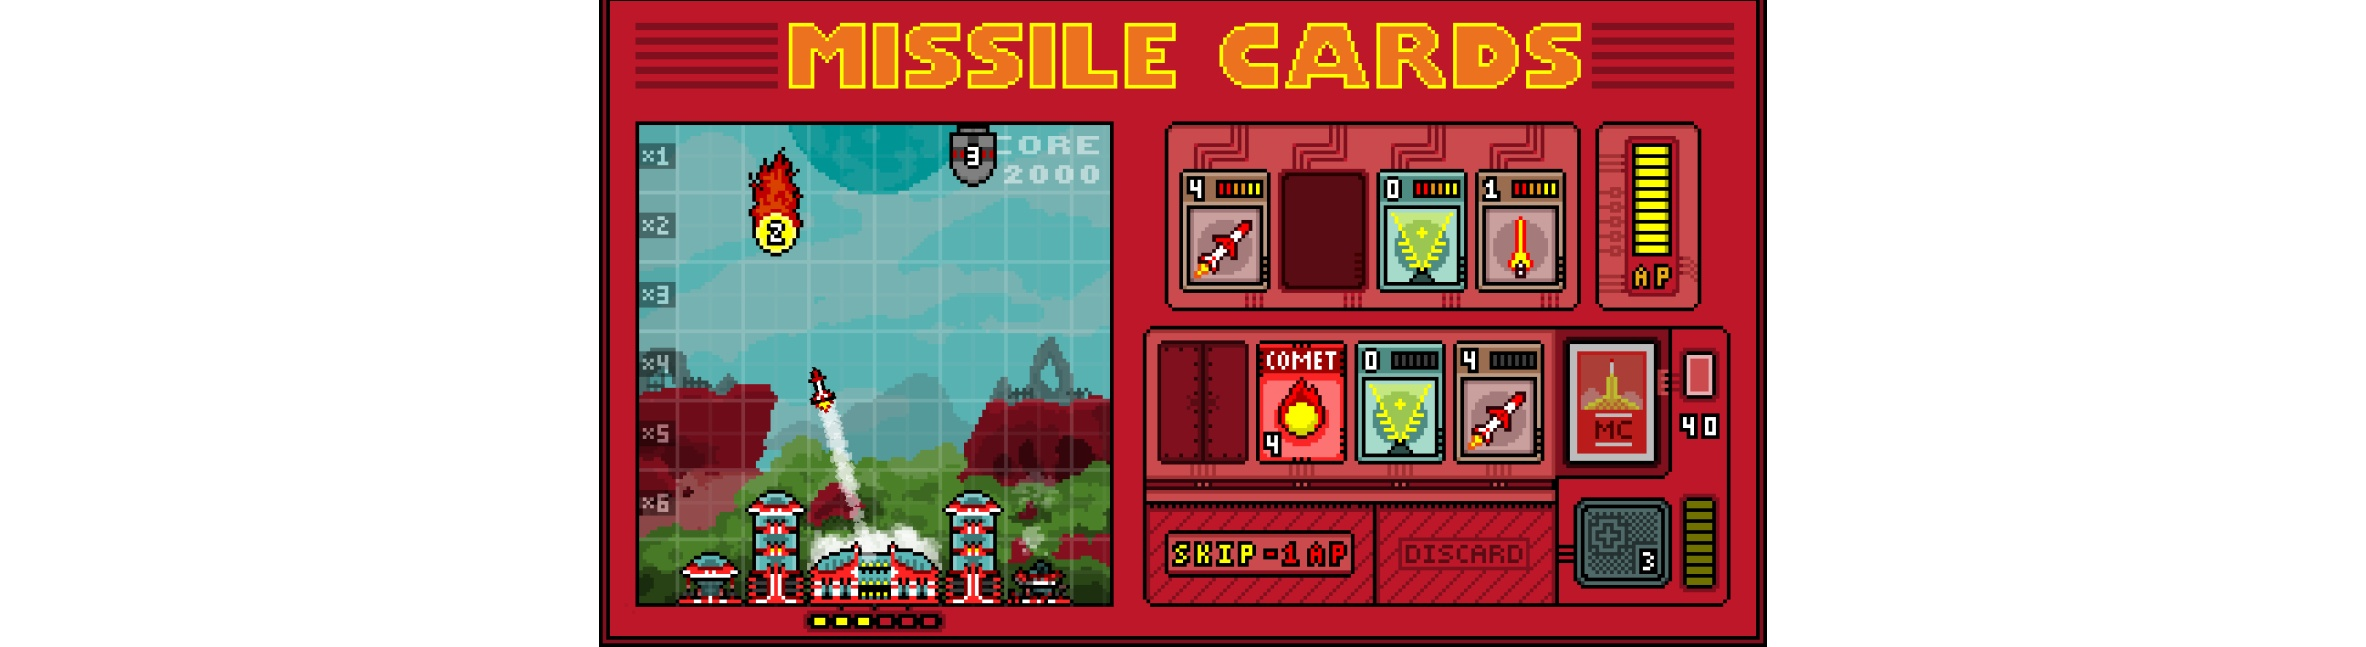 photo image Game Day: Missile Cards